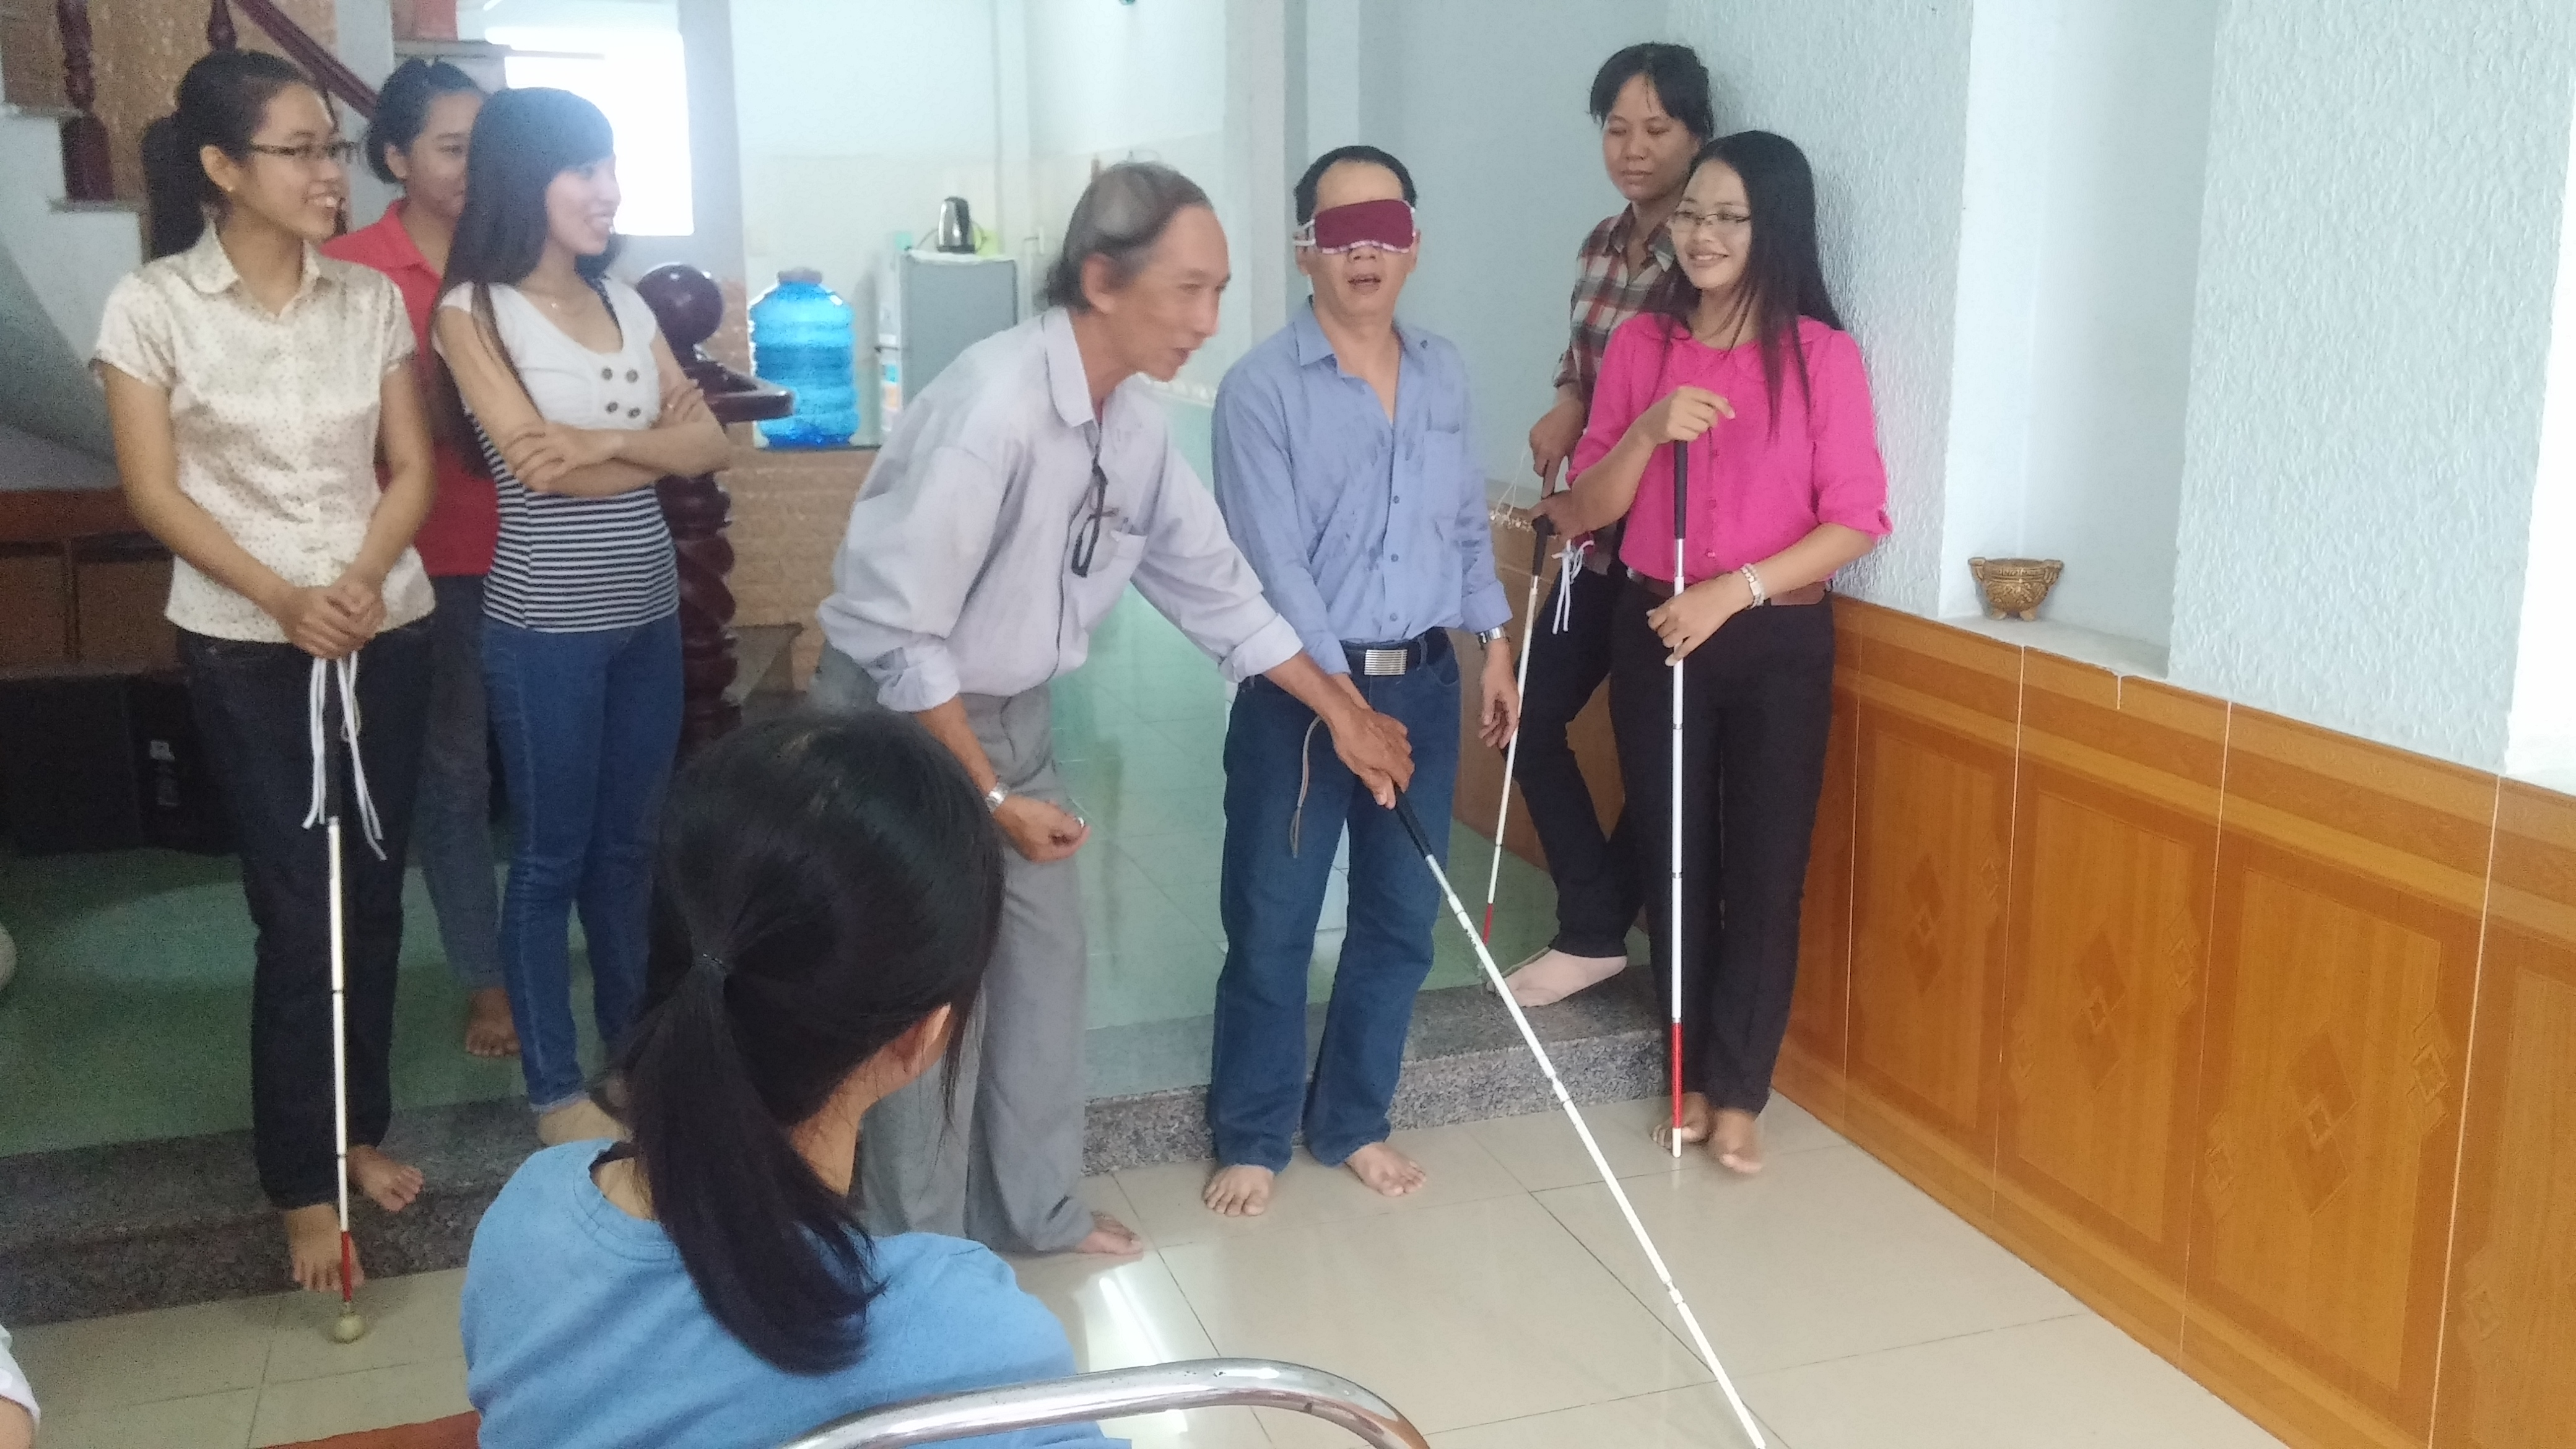 A session to train Orientation and Mobility Skills for volunteers at Sao Mai